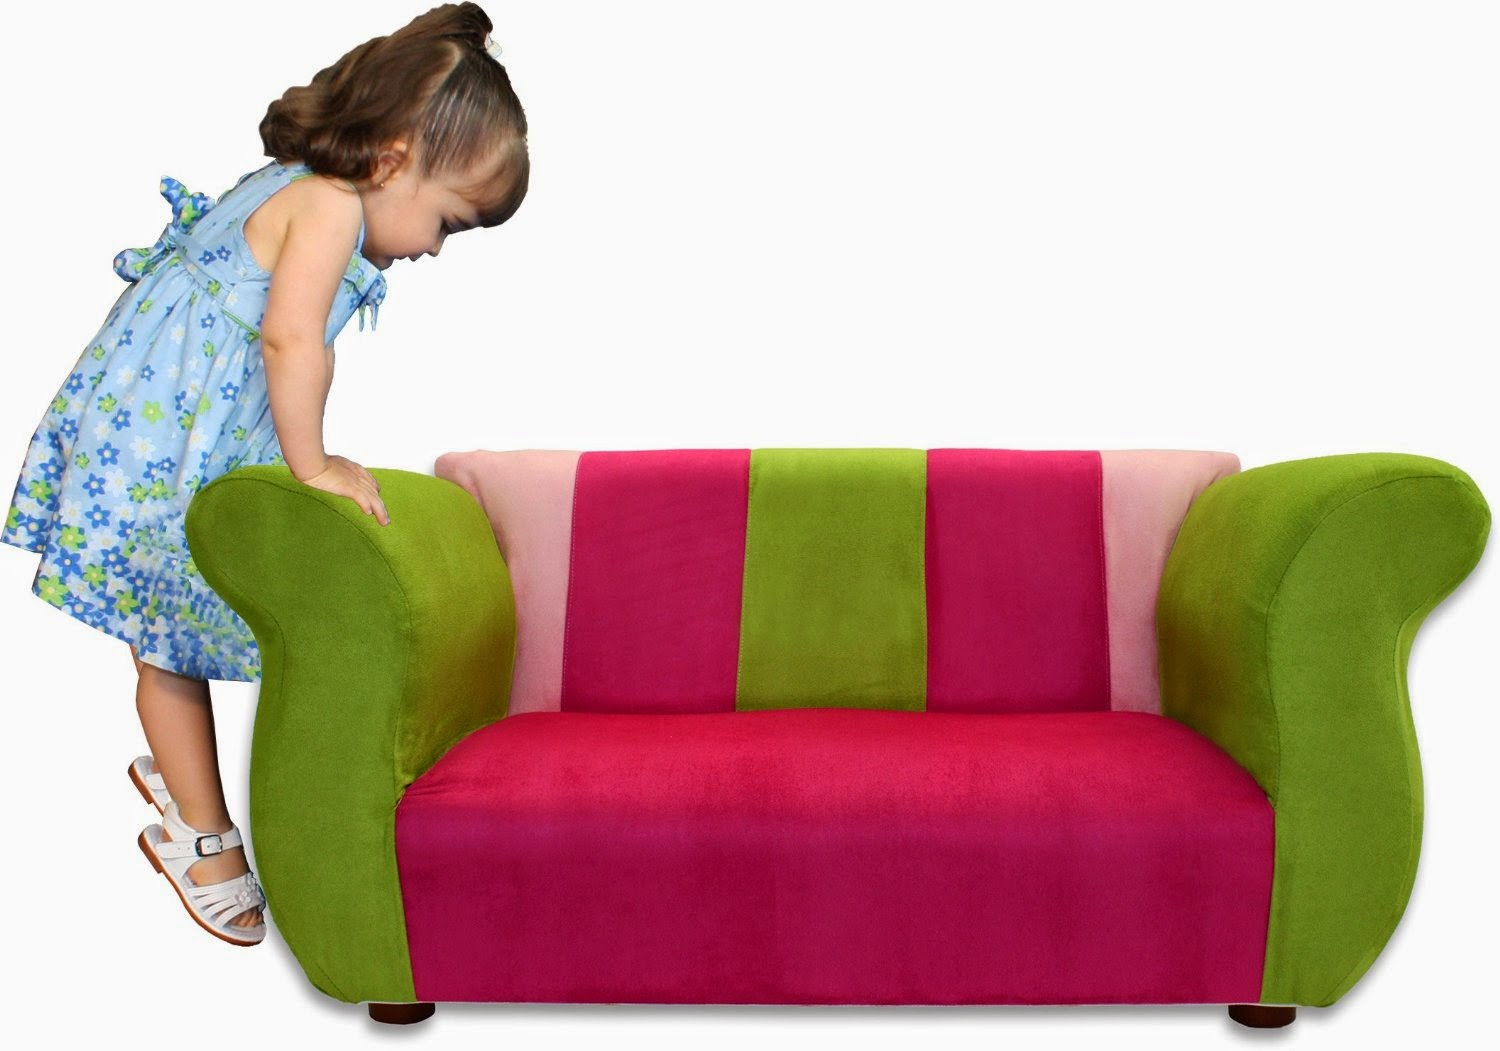 Kids Sofa Set How To Protect From Cat Scratching Couch Mini For